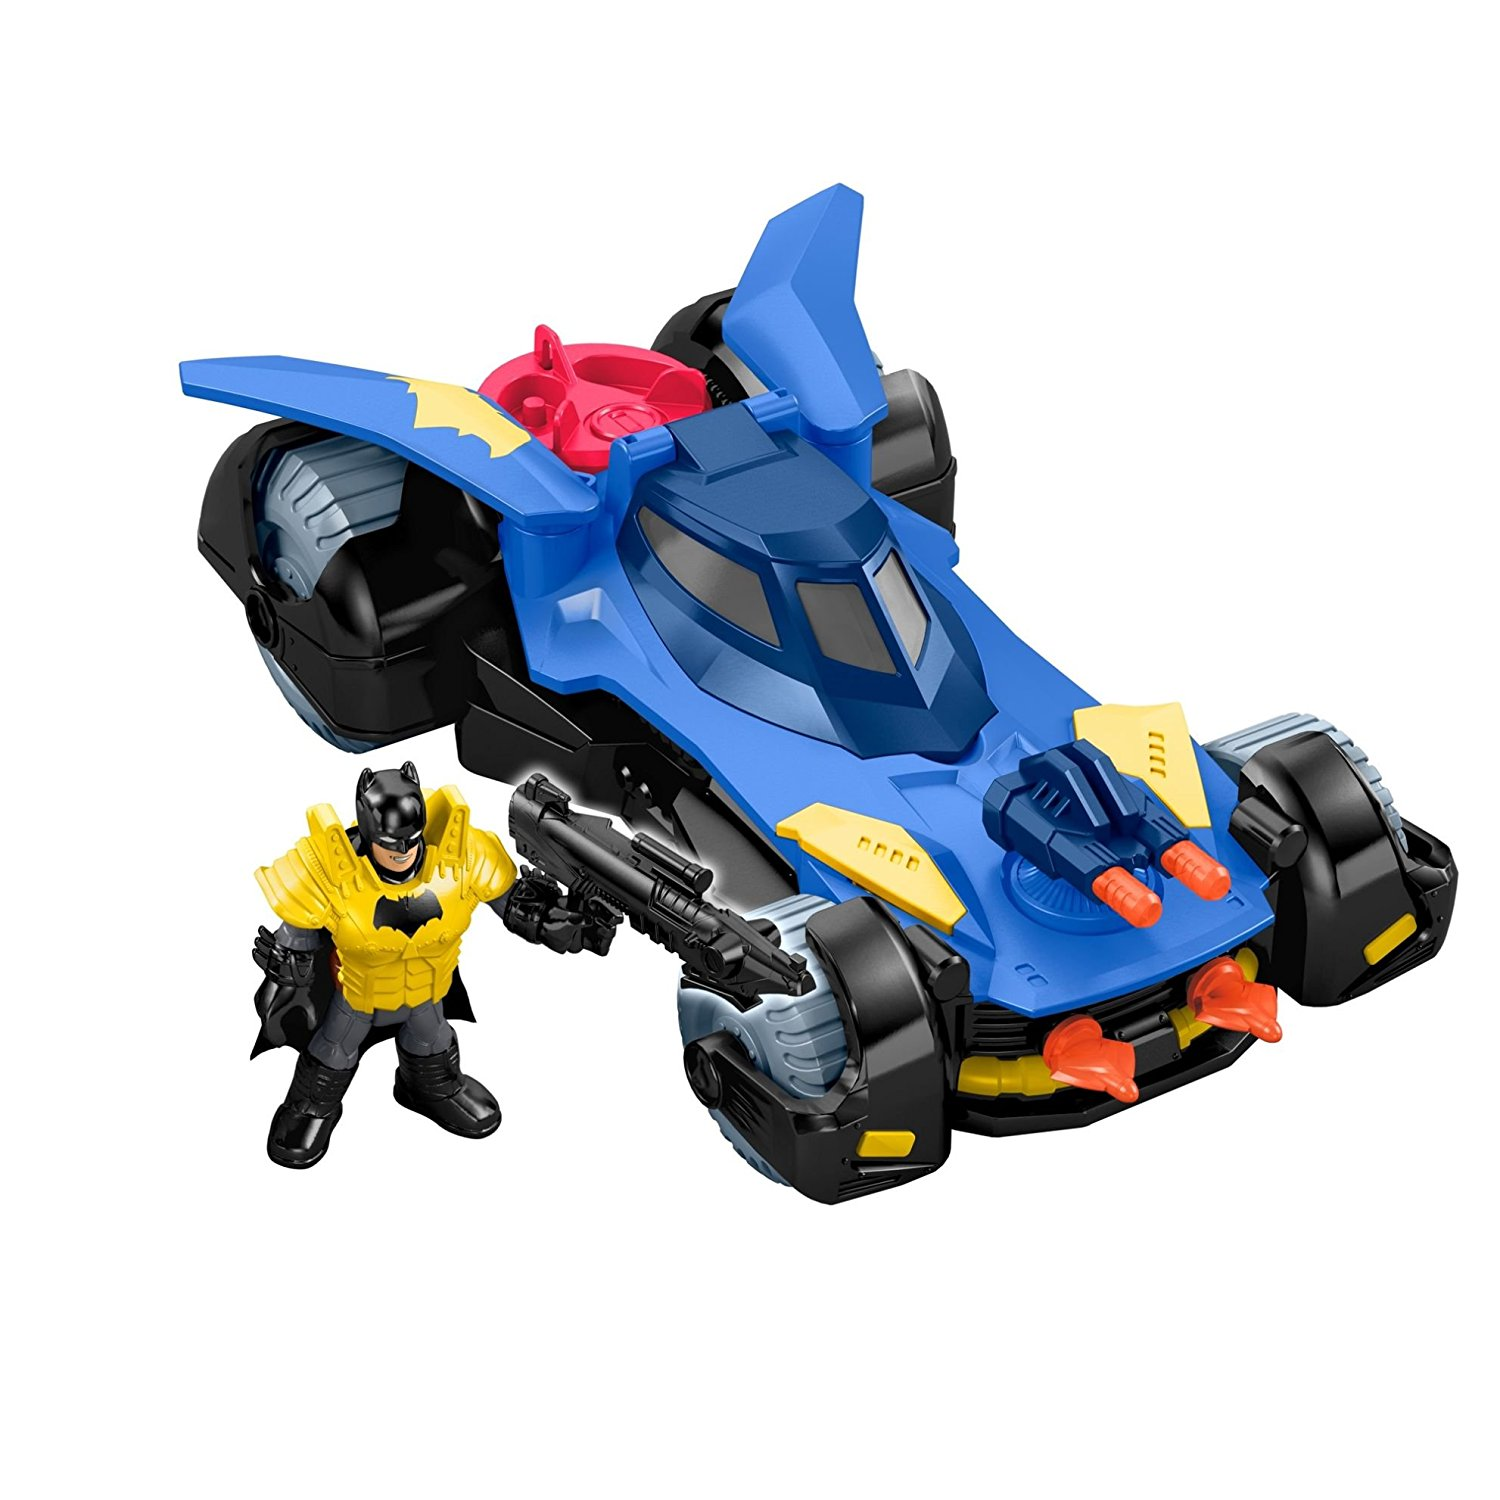 Fisher-Price Imaginext DC Super Friends, Batmobile, Open cockpit - Batman figure fits inside By FisherPrice Ship from US